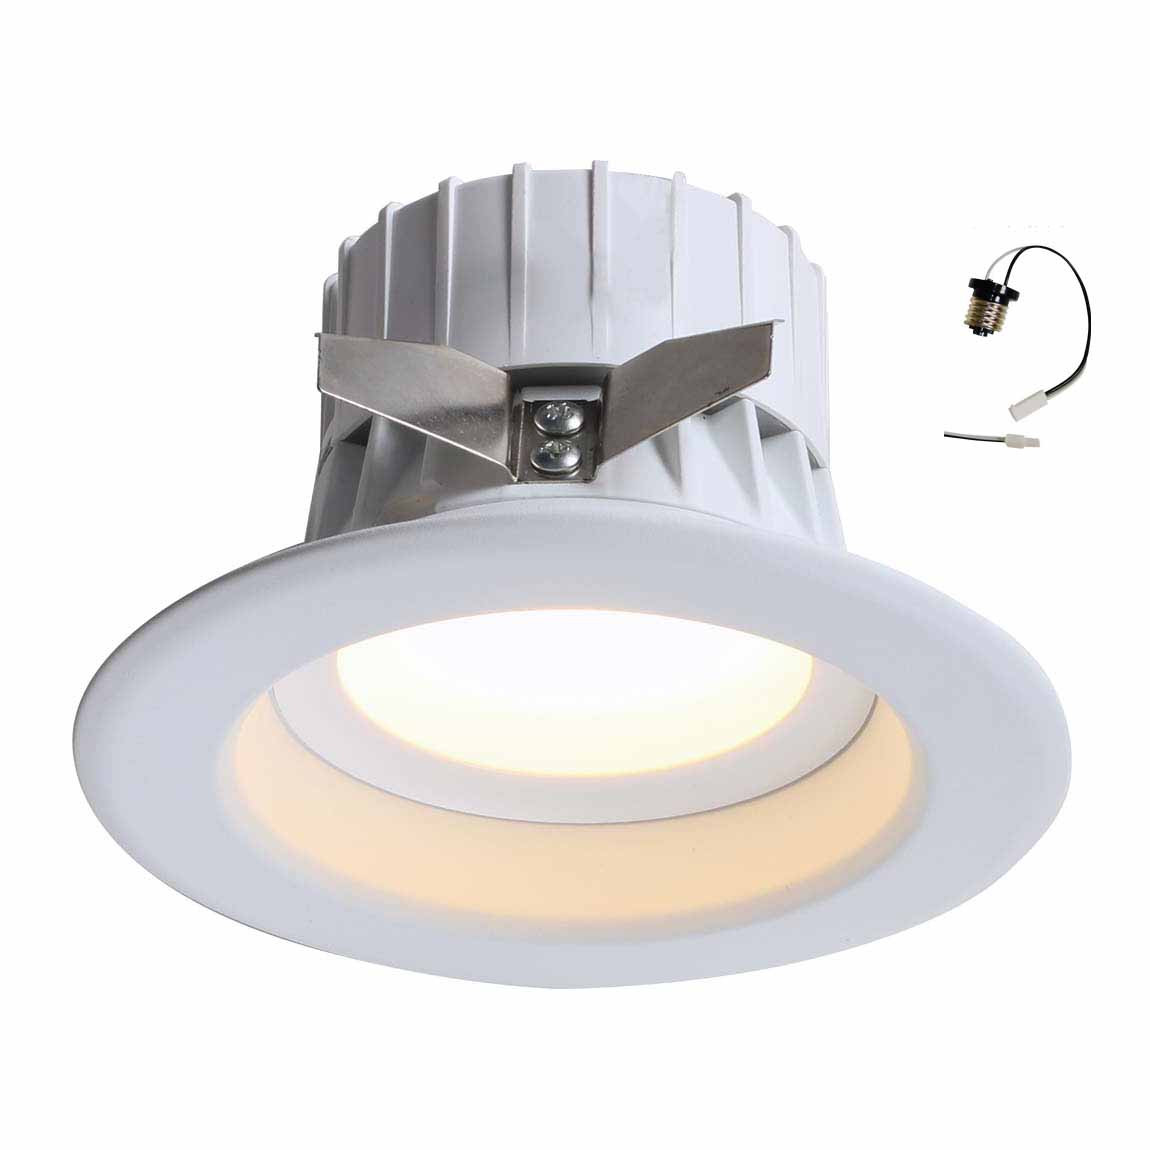 Best ideas about Recessed Lighting Led . Save or Pin Volume International V8414 6 LED Recessed Light Trim for 3 Now.